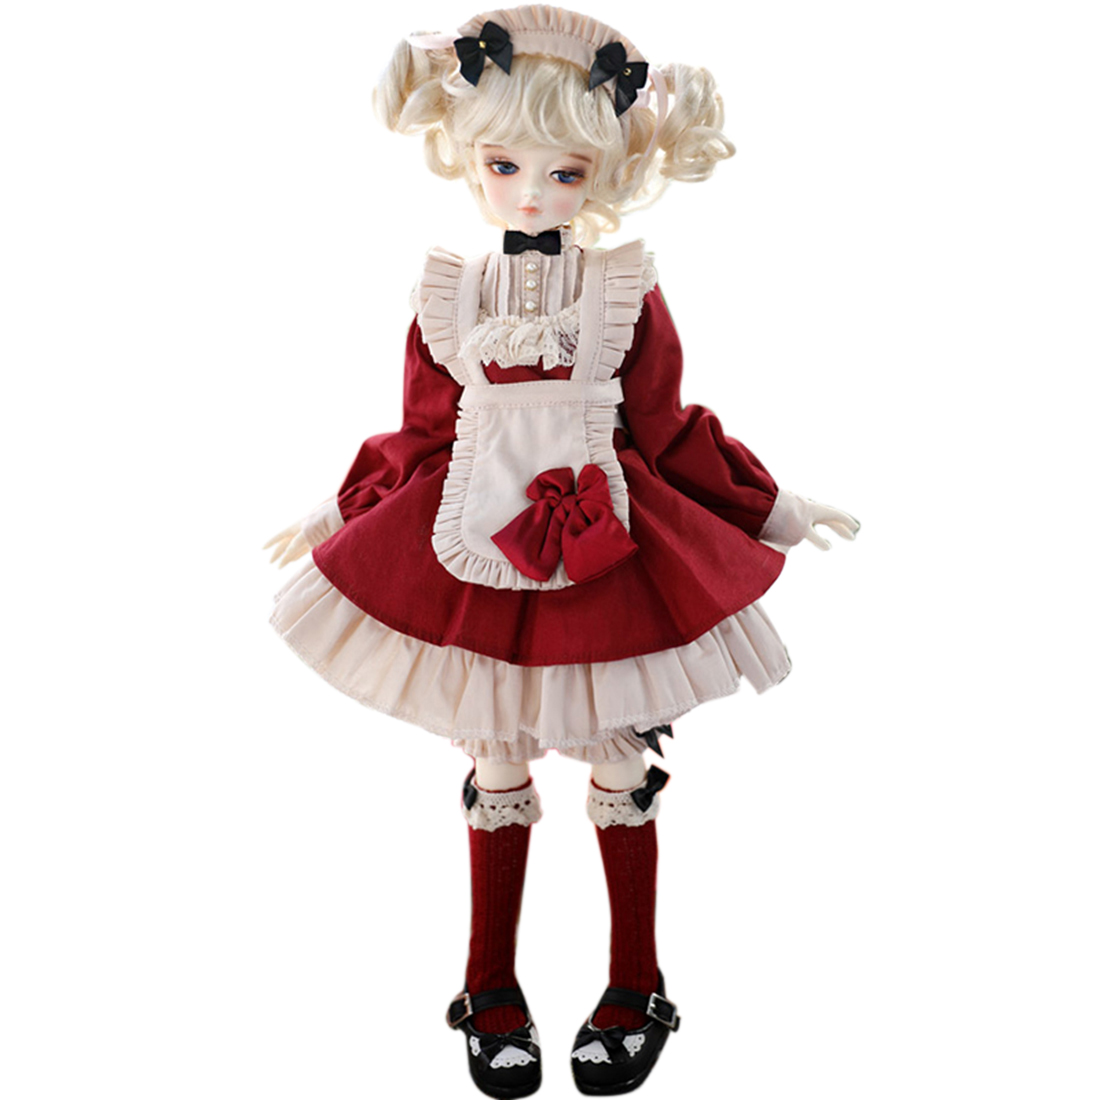 5Pcs Retro Red Maid Apron Dress Outfit  BJD Doll Girl Clothes Set For 1/3 Or 1/4 Or 1/6 BJD Doll (No Doll) DIY Dolls Accessories